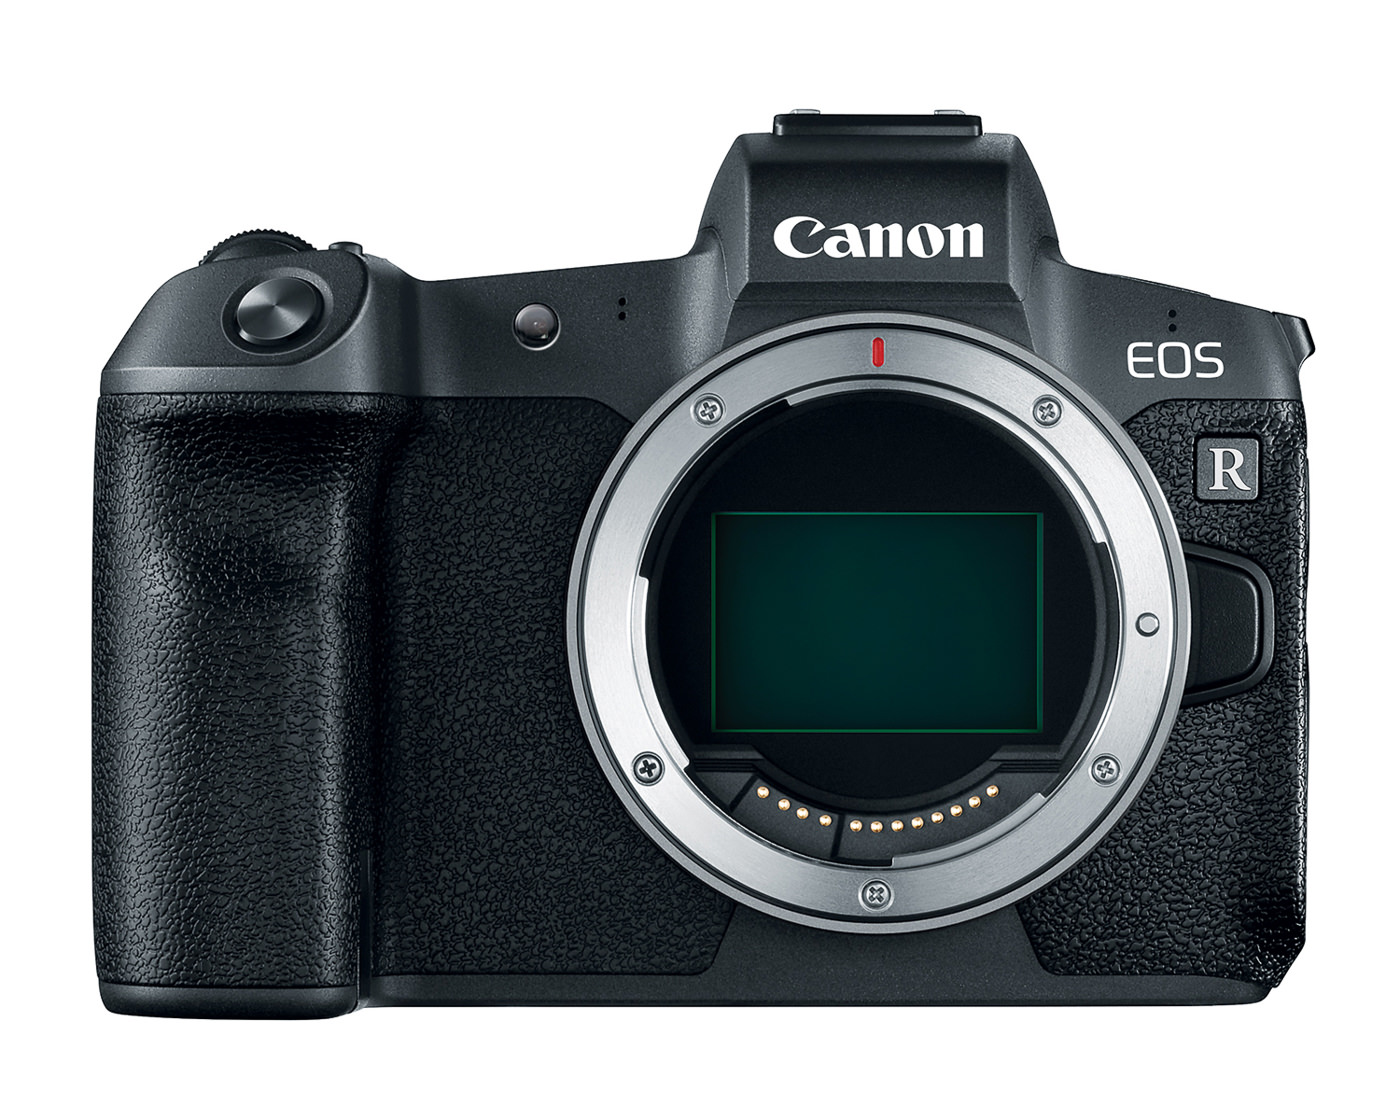 Canon EOS R front view with sensor visible